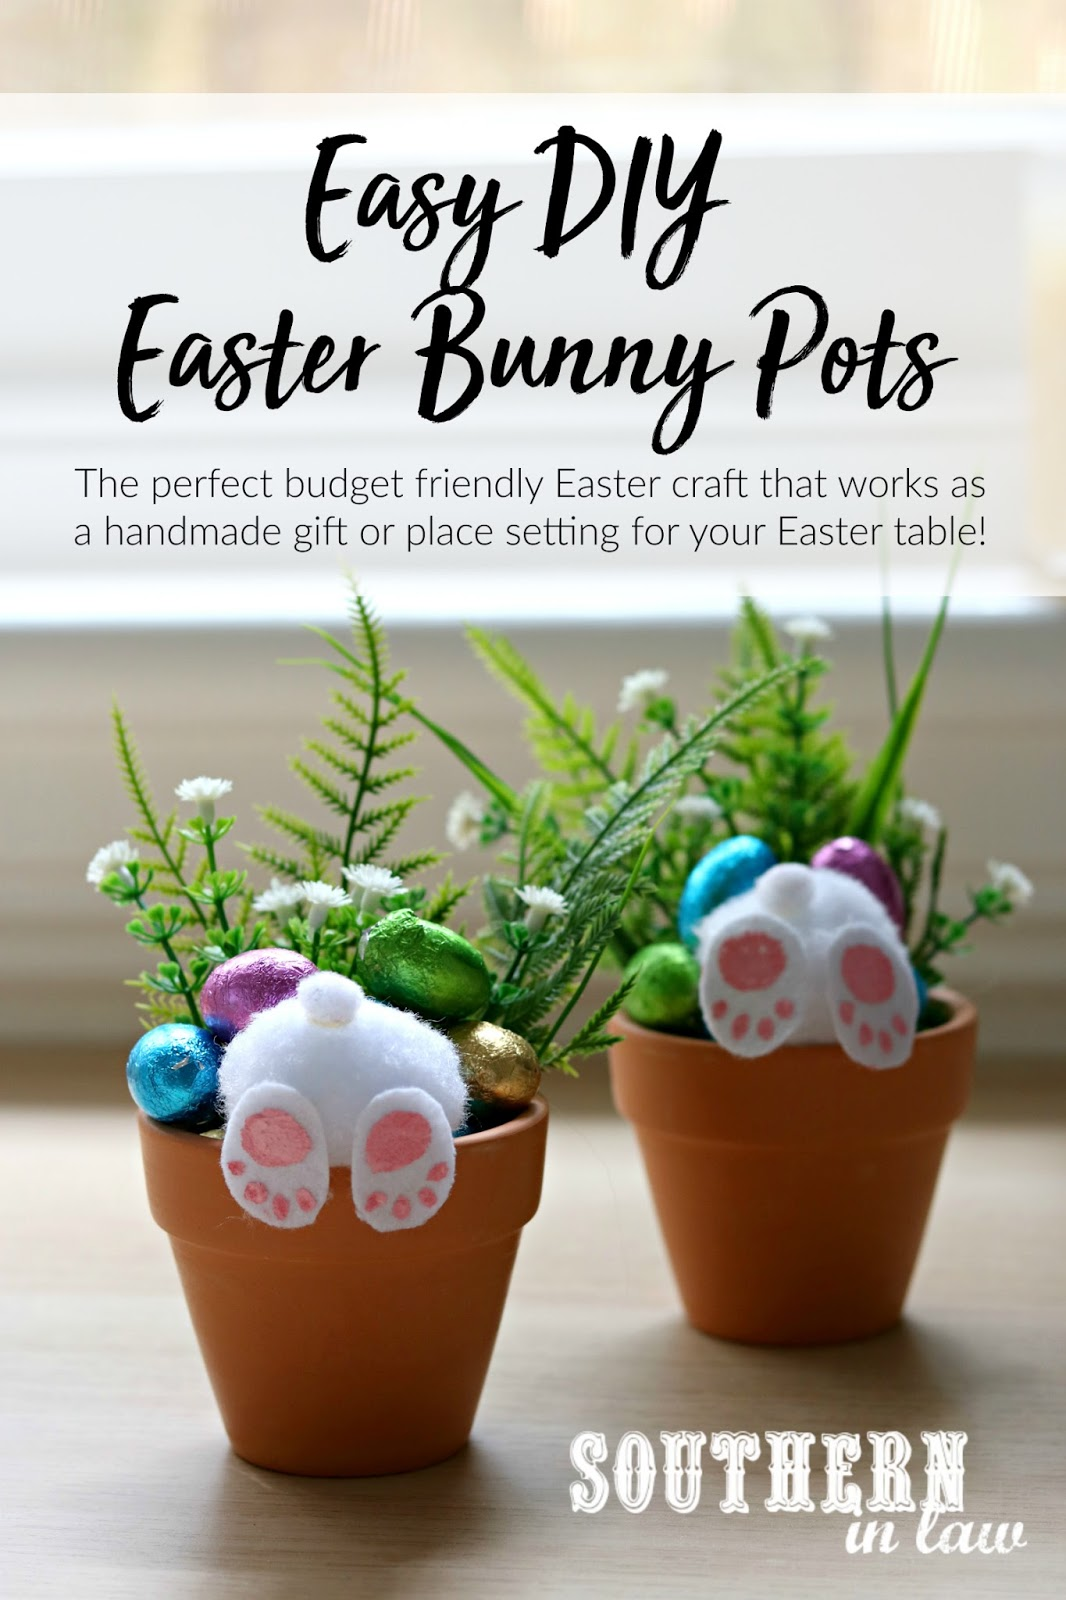 Southern in law how to make your own curious easter bunny pots an easy diy curious easter bunny pots handmade easter gift ideas place settings placecards negle